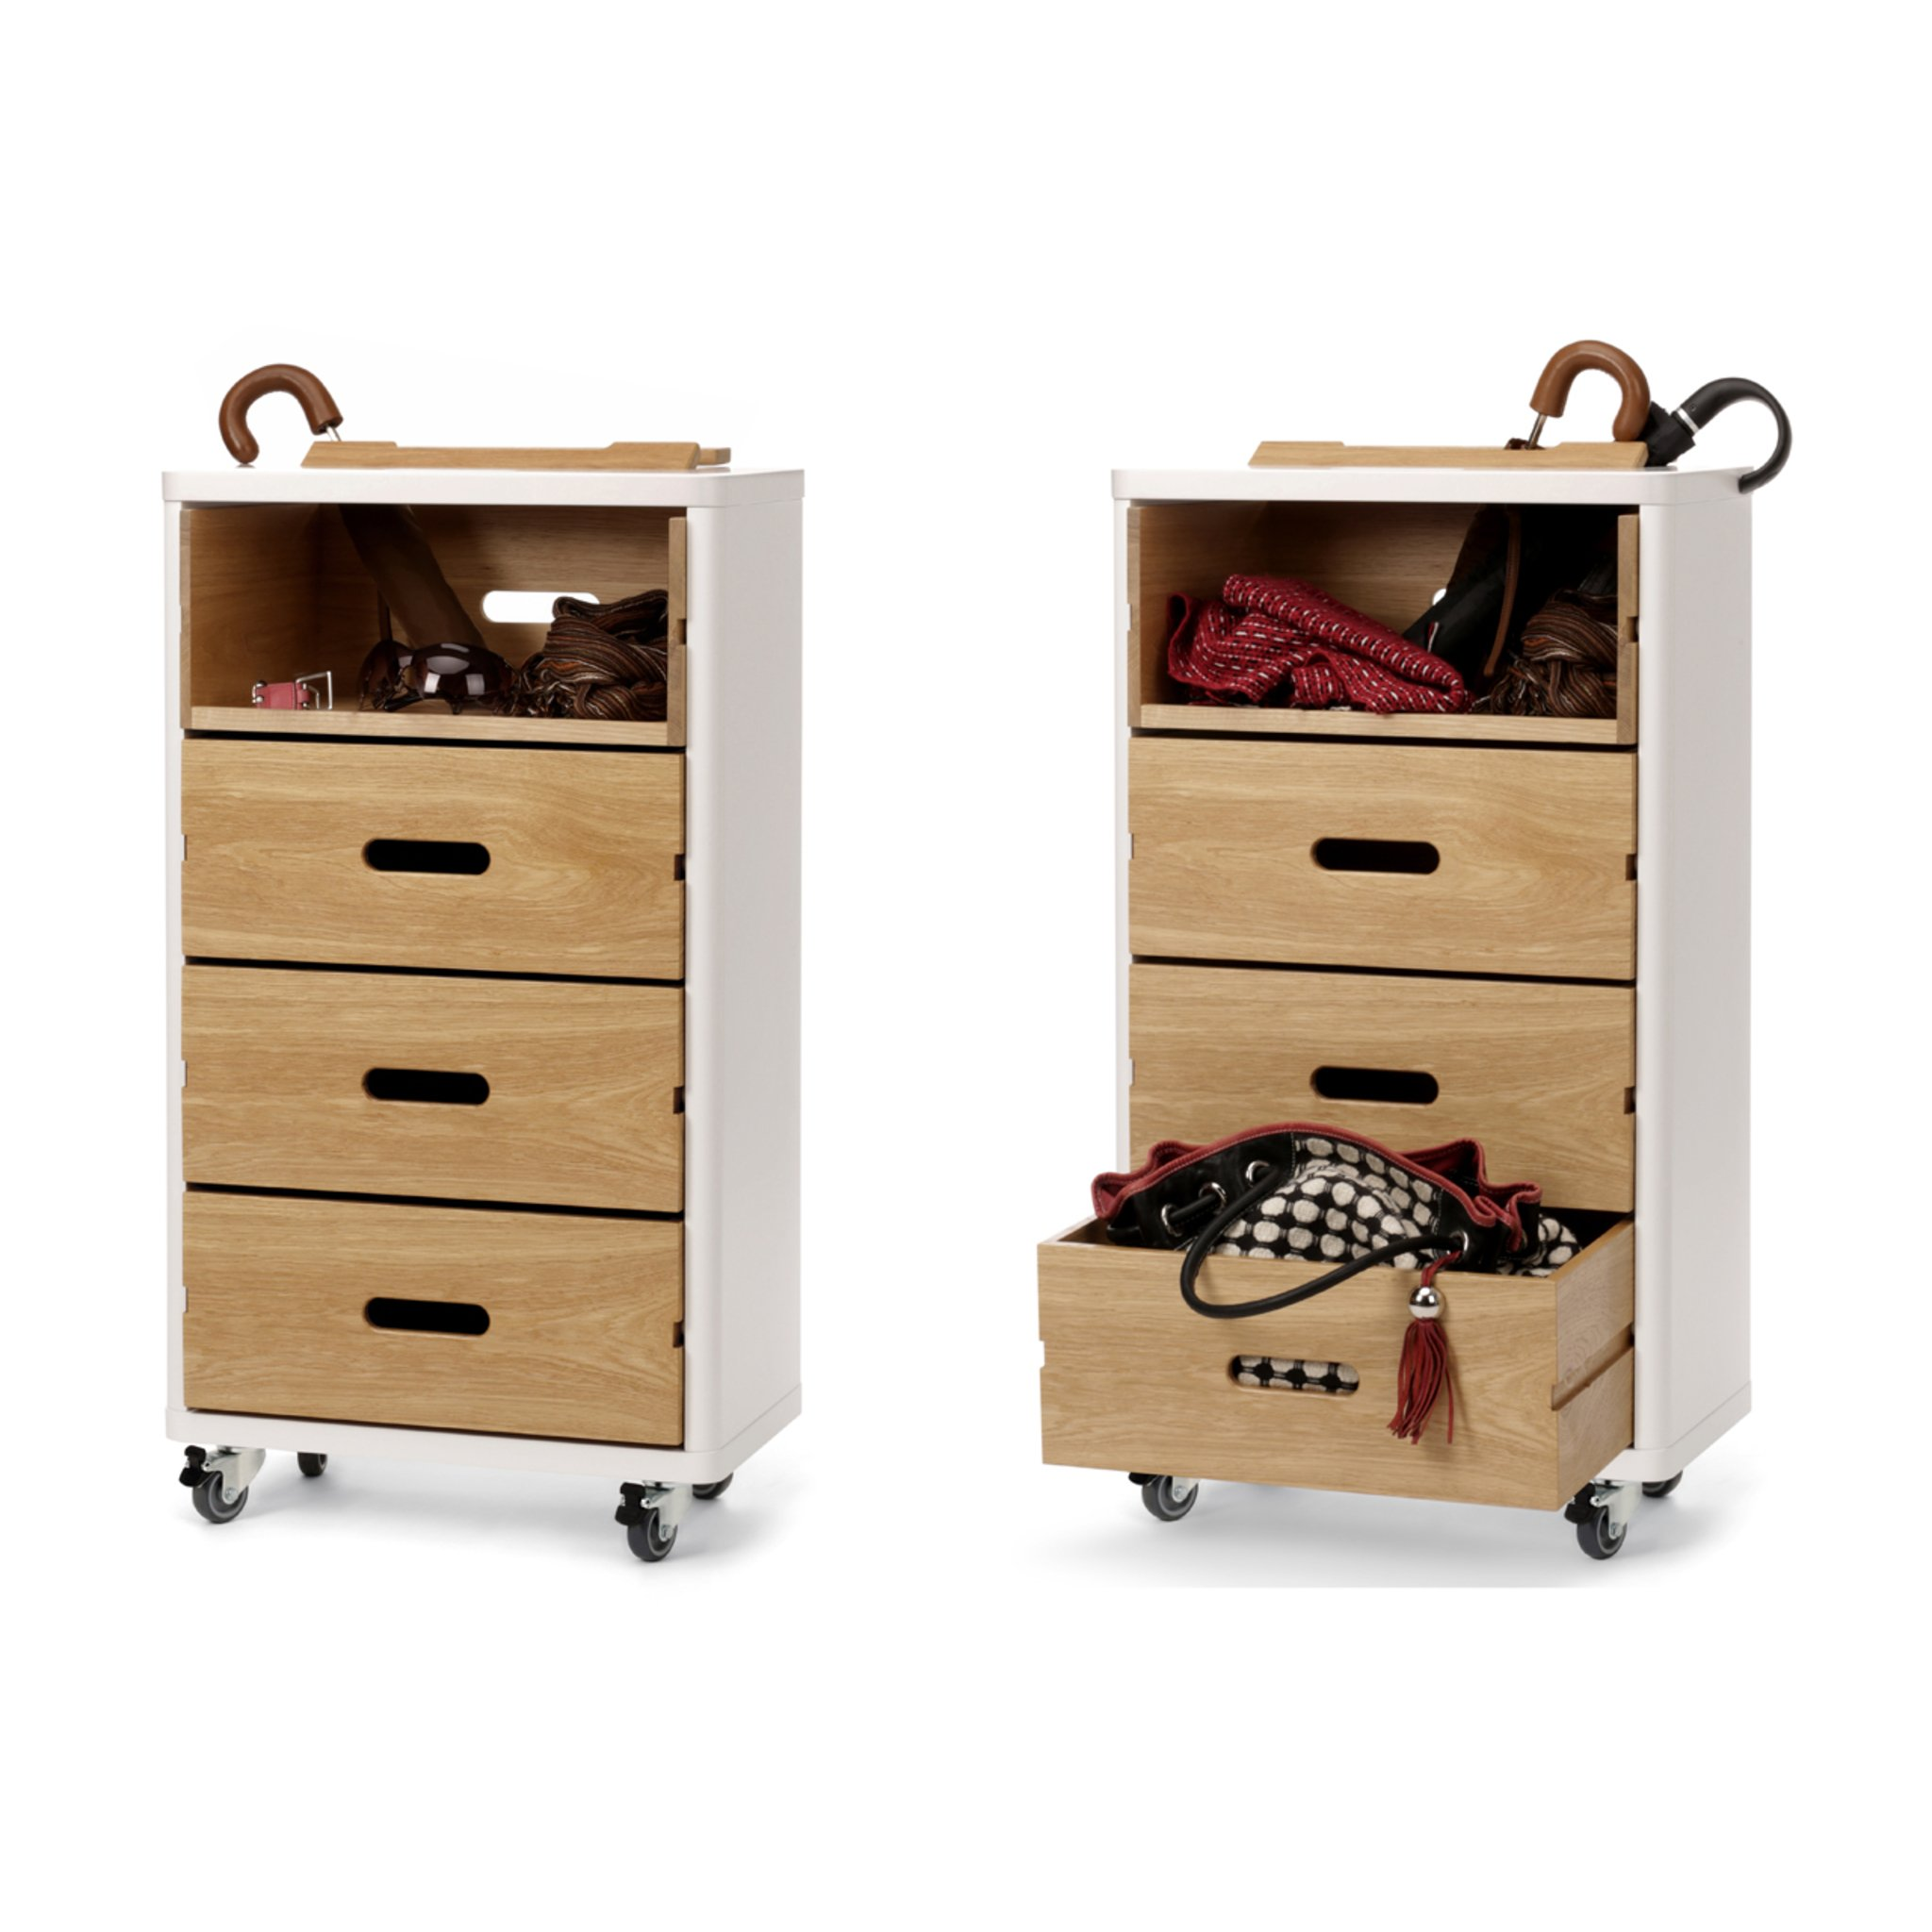 schrank auf rollen in wei und holz cow. Black Bedroom Furniture Sets. Home Design Ideas